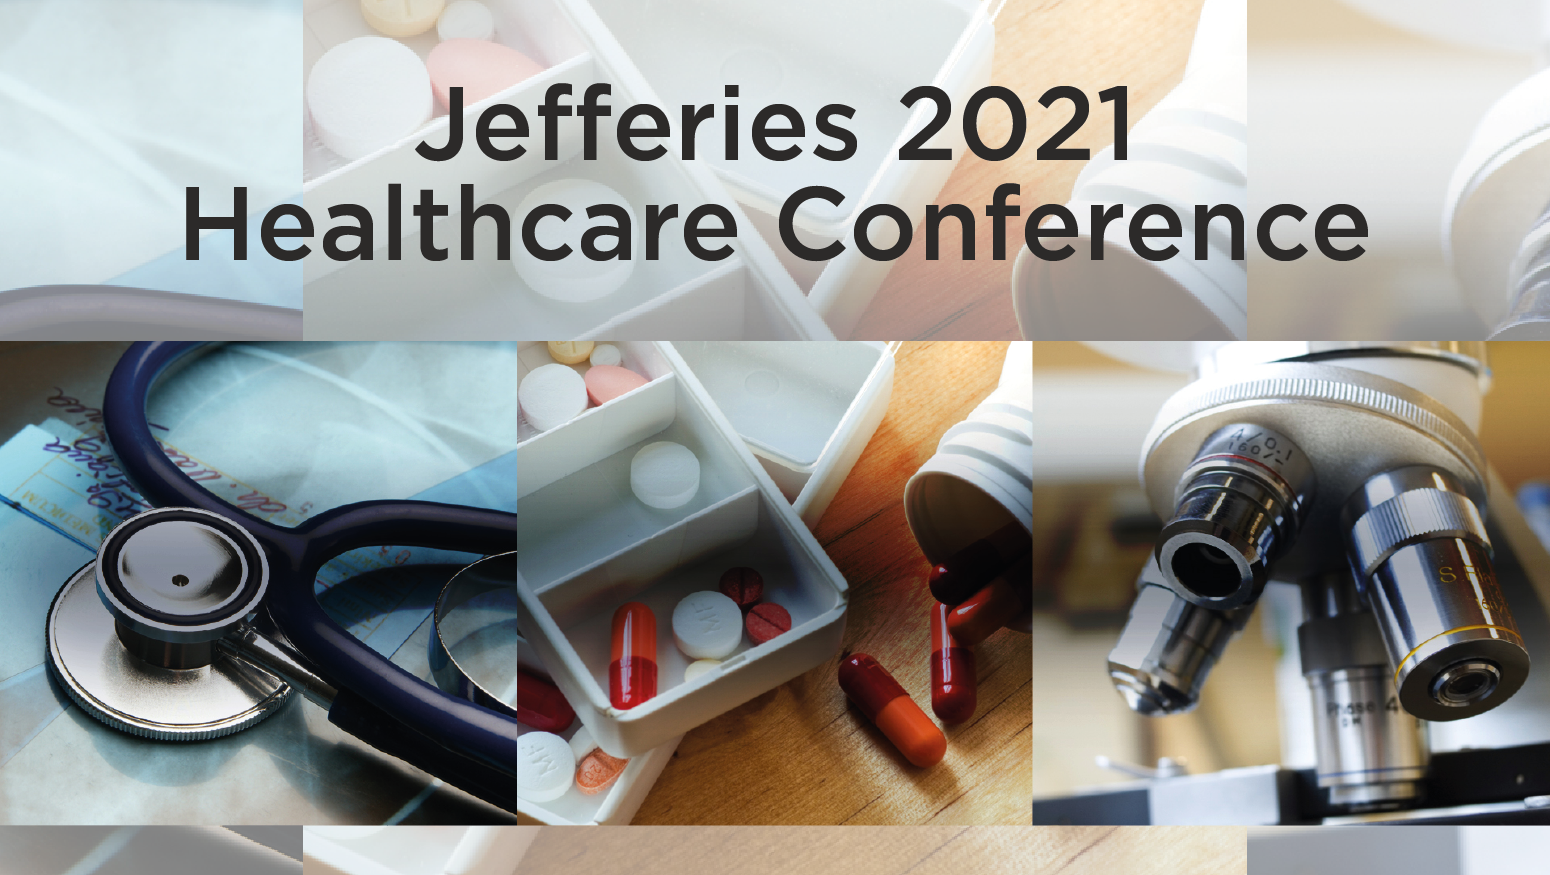 Jefferies 2021 Healthcare Conference